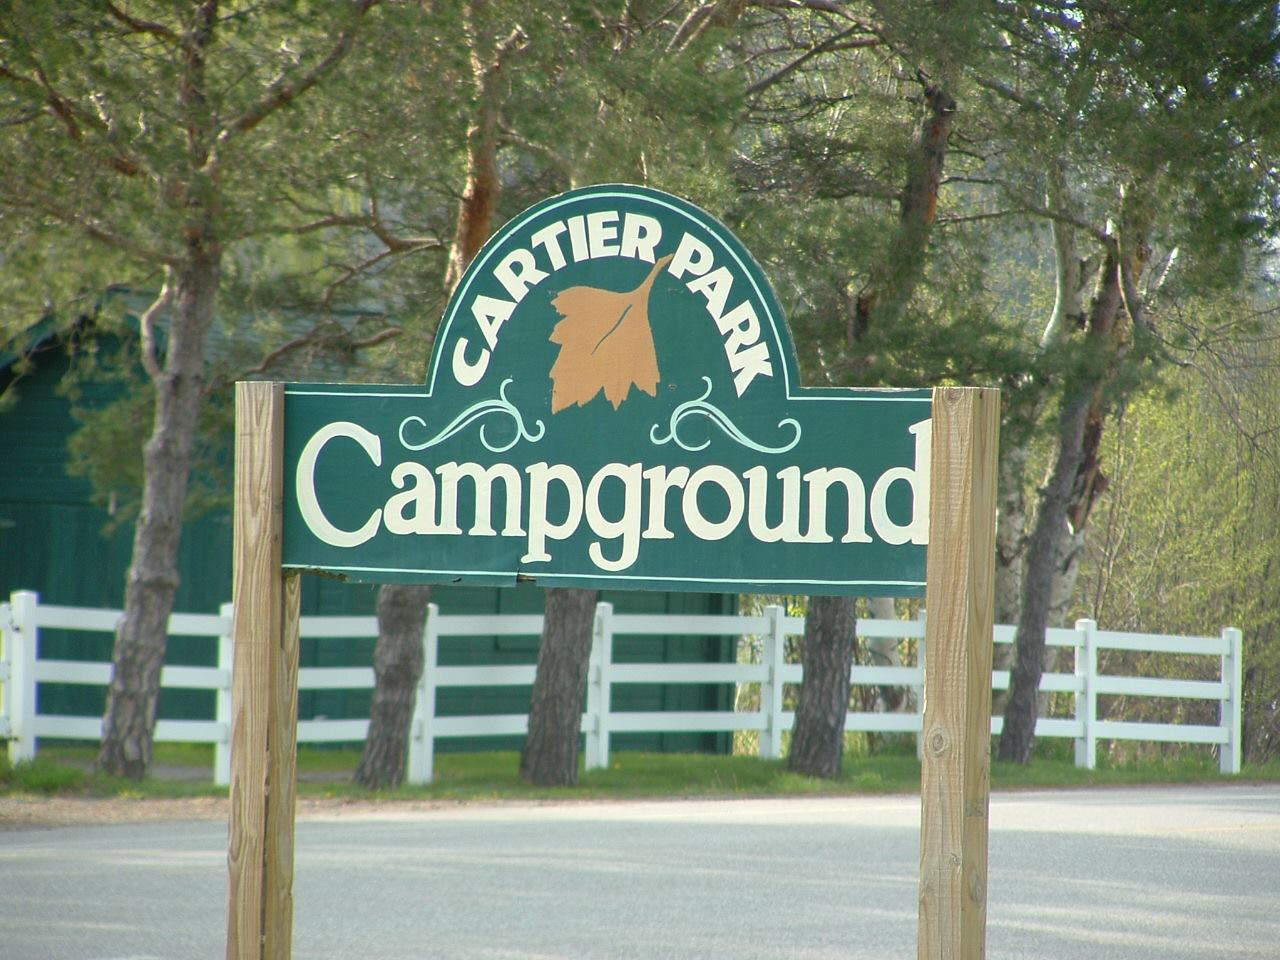 Cartier Park Campground